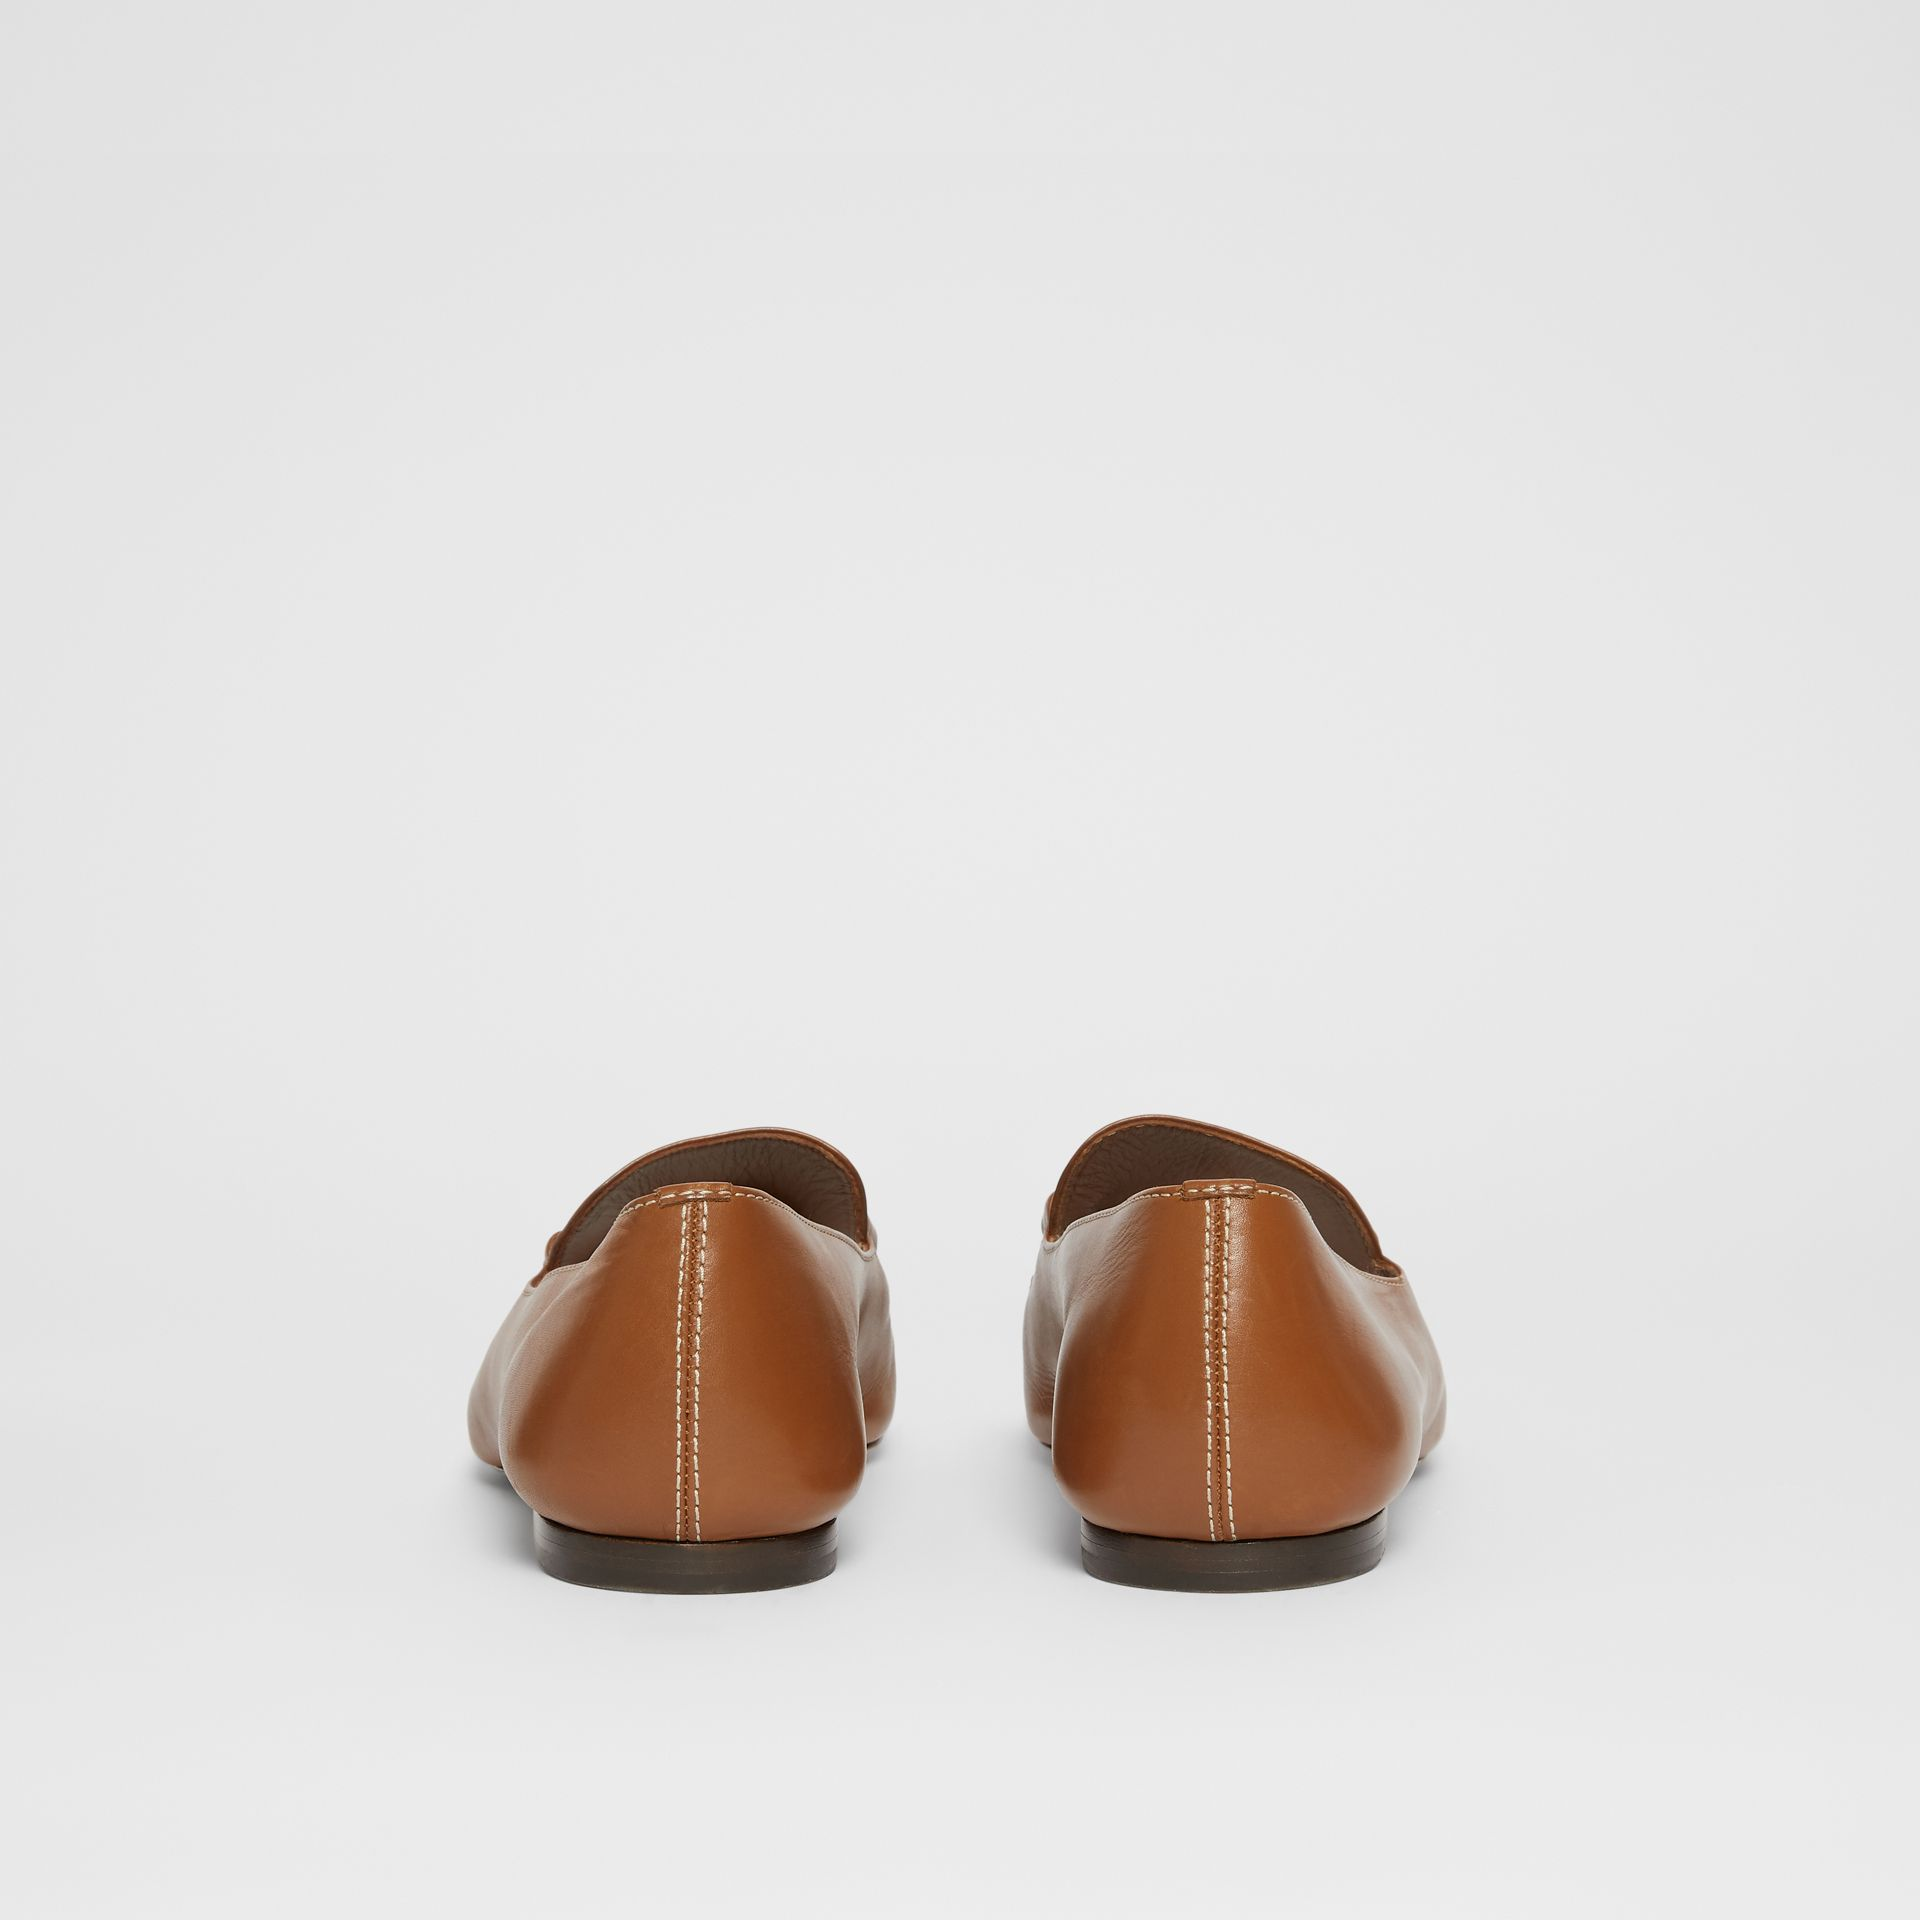 Monogram Motif Leather Loafers in Tan - Women | Burberry Australia - gallery image 4